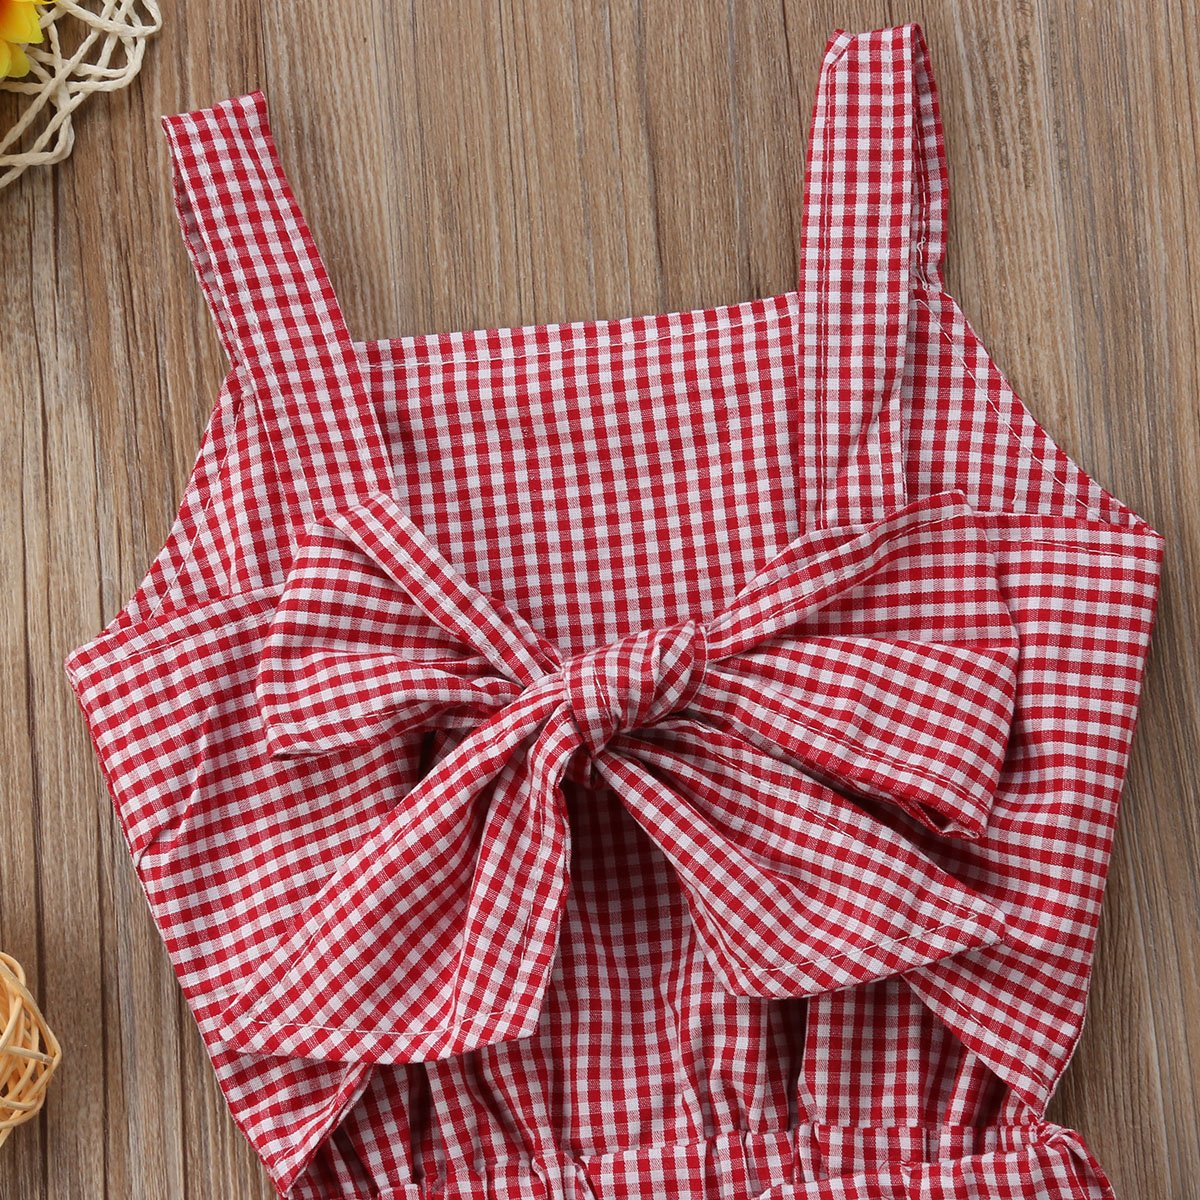 Kids Toddler Baby Girl Red Plaid Big Bow Sleeveless Romper Jumpsuit Trousers Clothes Outfits